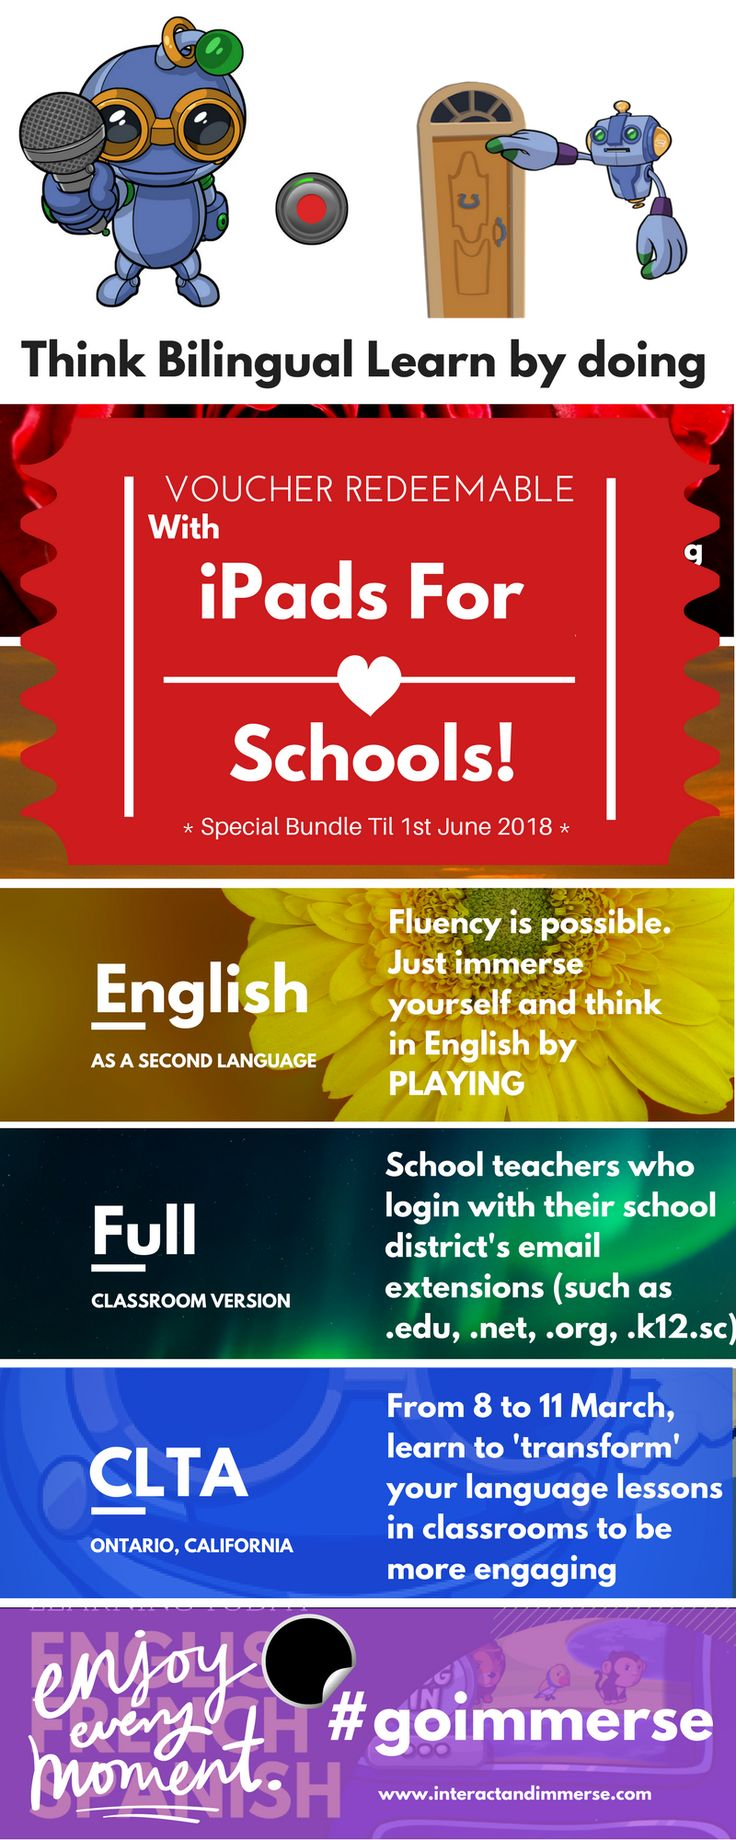 Are you ready to change the way your students learn languages? Immersion is the answer-- Think Bilingual is the method. #teacher #english #french #spanish #esl #duallanguage #clta2018 #edtech #language #ipad #schools #classroom #teacherproblems